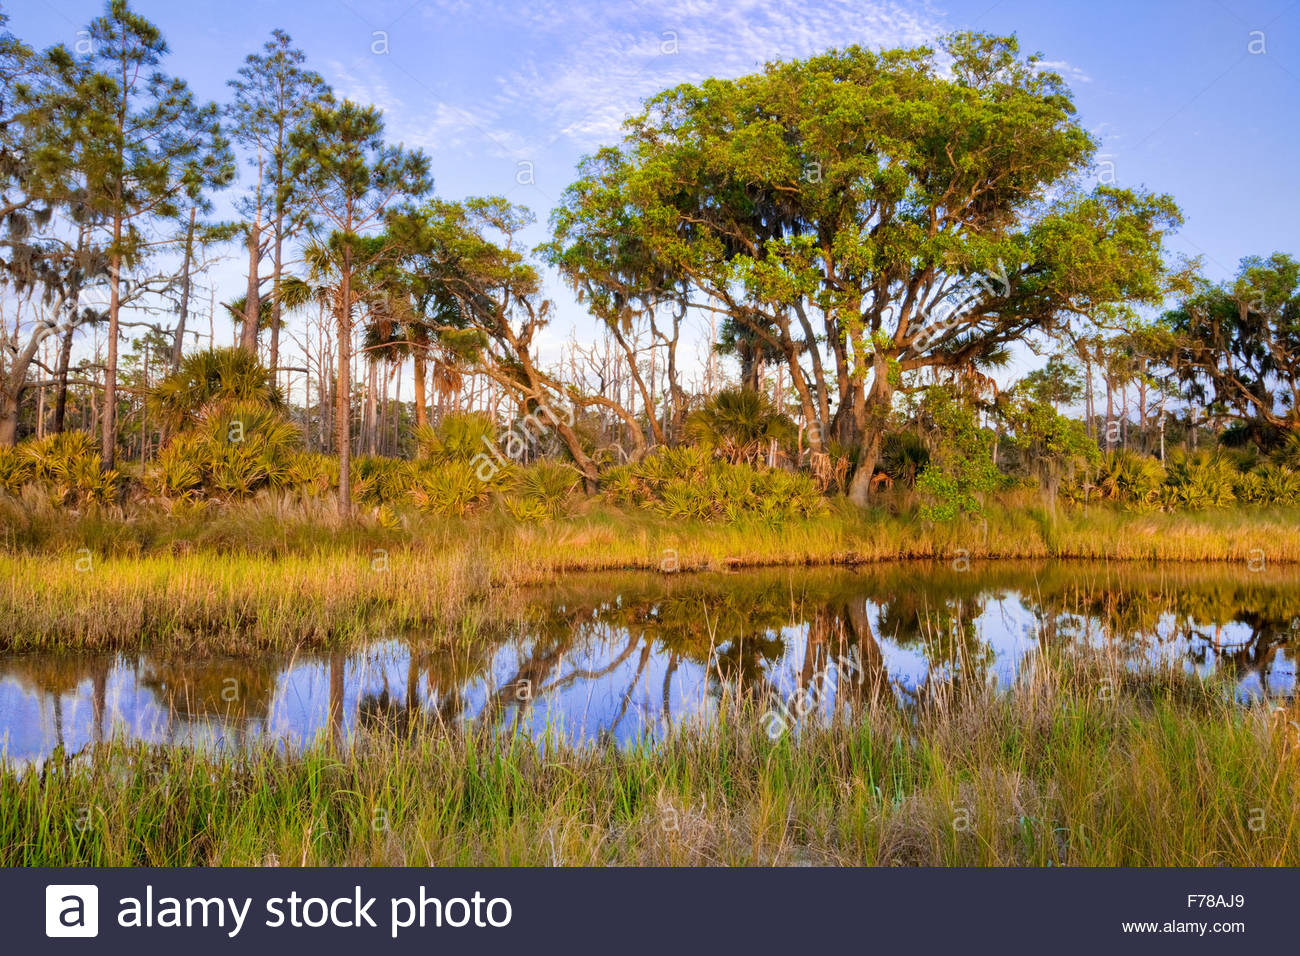 [Salt marsh] with 'Saw palmetto' [Serenoa repens] or [Sabal serrulatum] and [Sand live oak ] - Stock Image